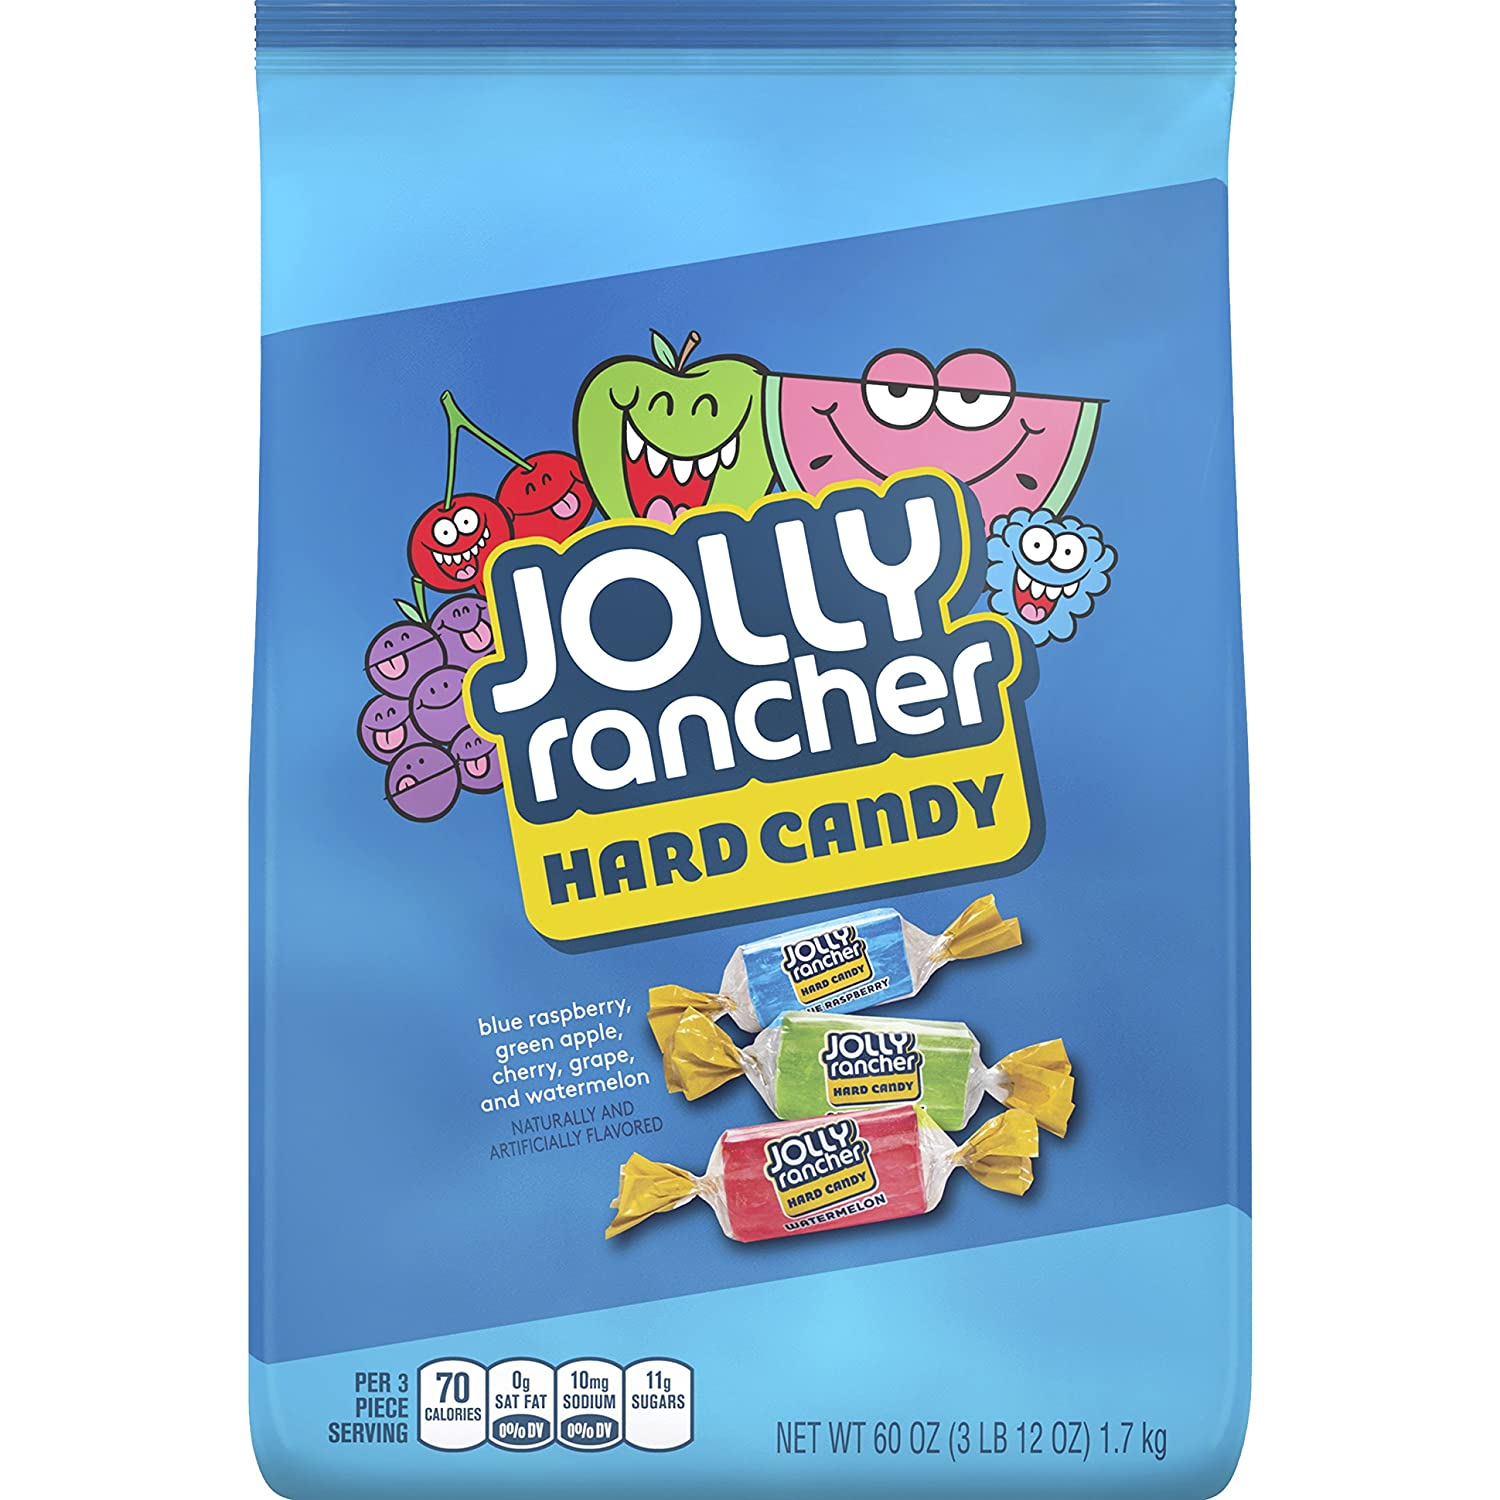 JOLLY RANCHER Hard Candy Assortment, 3.75 Pound